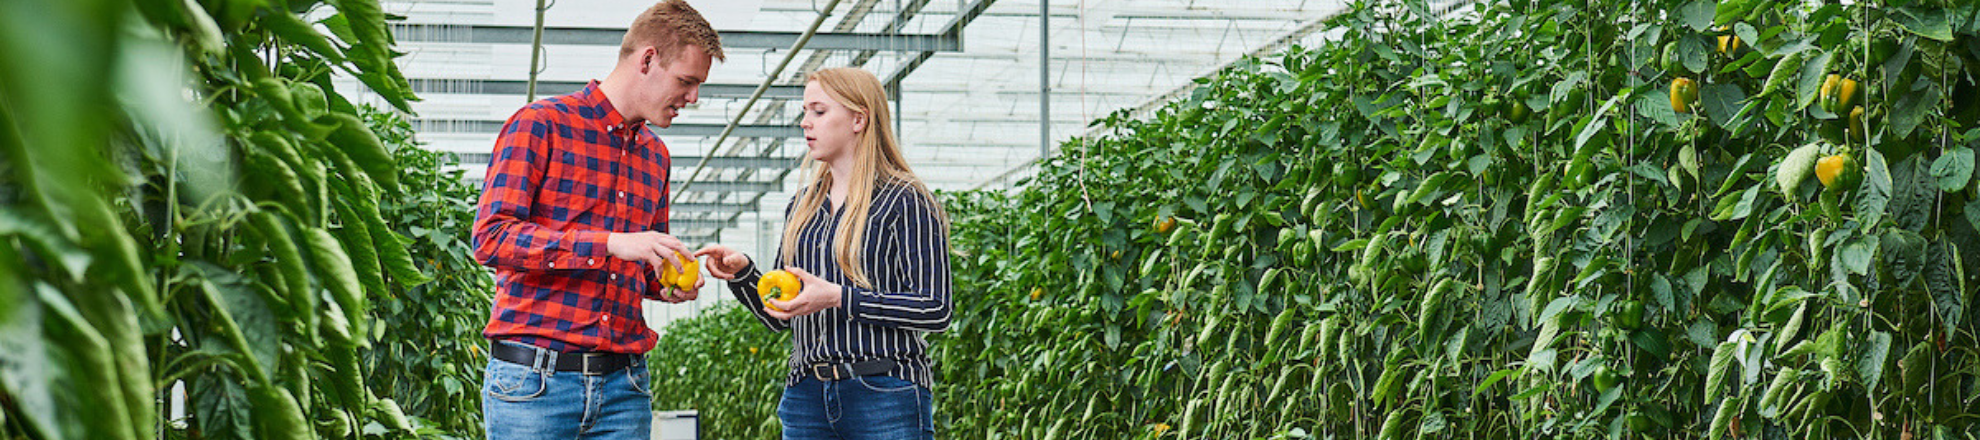 Arable farming students from Aeres University of Applied Sciences in greenhouse with capsicum